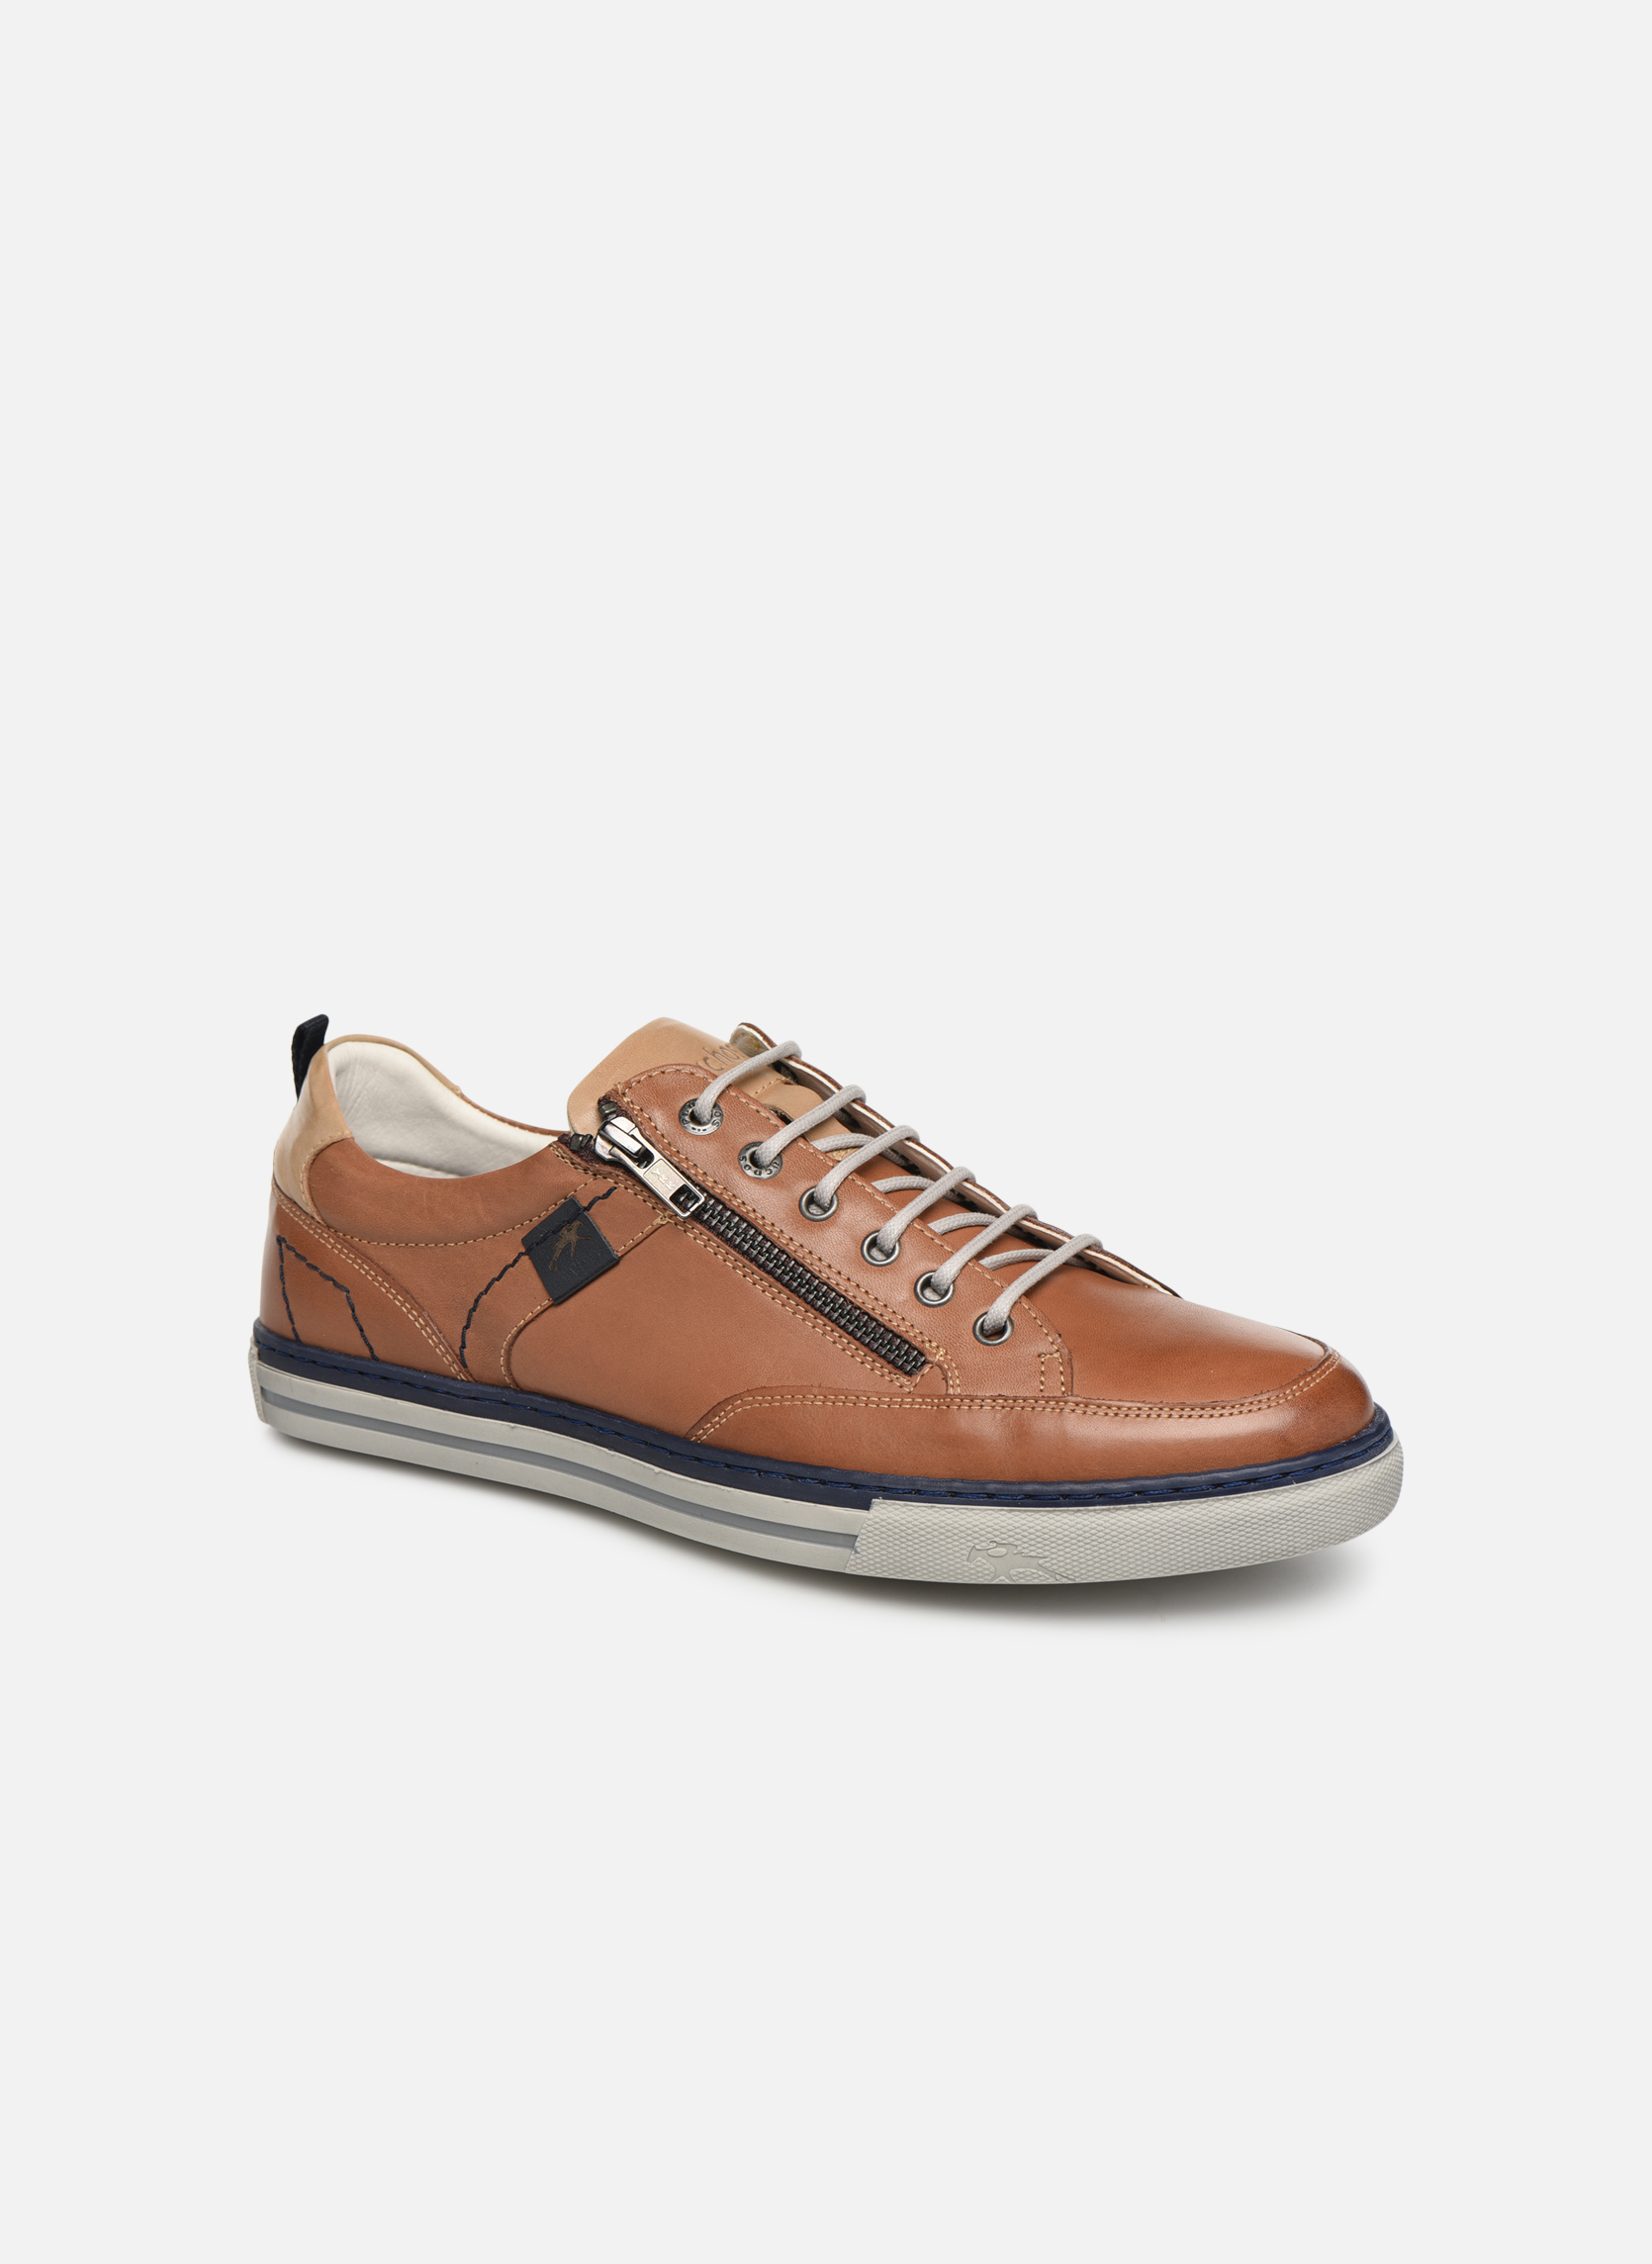 Sneakers Quebec 9376 by Fluchos